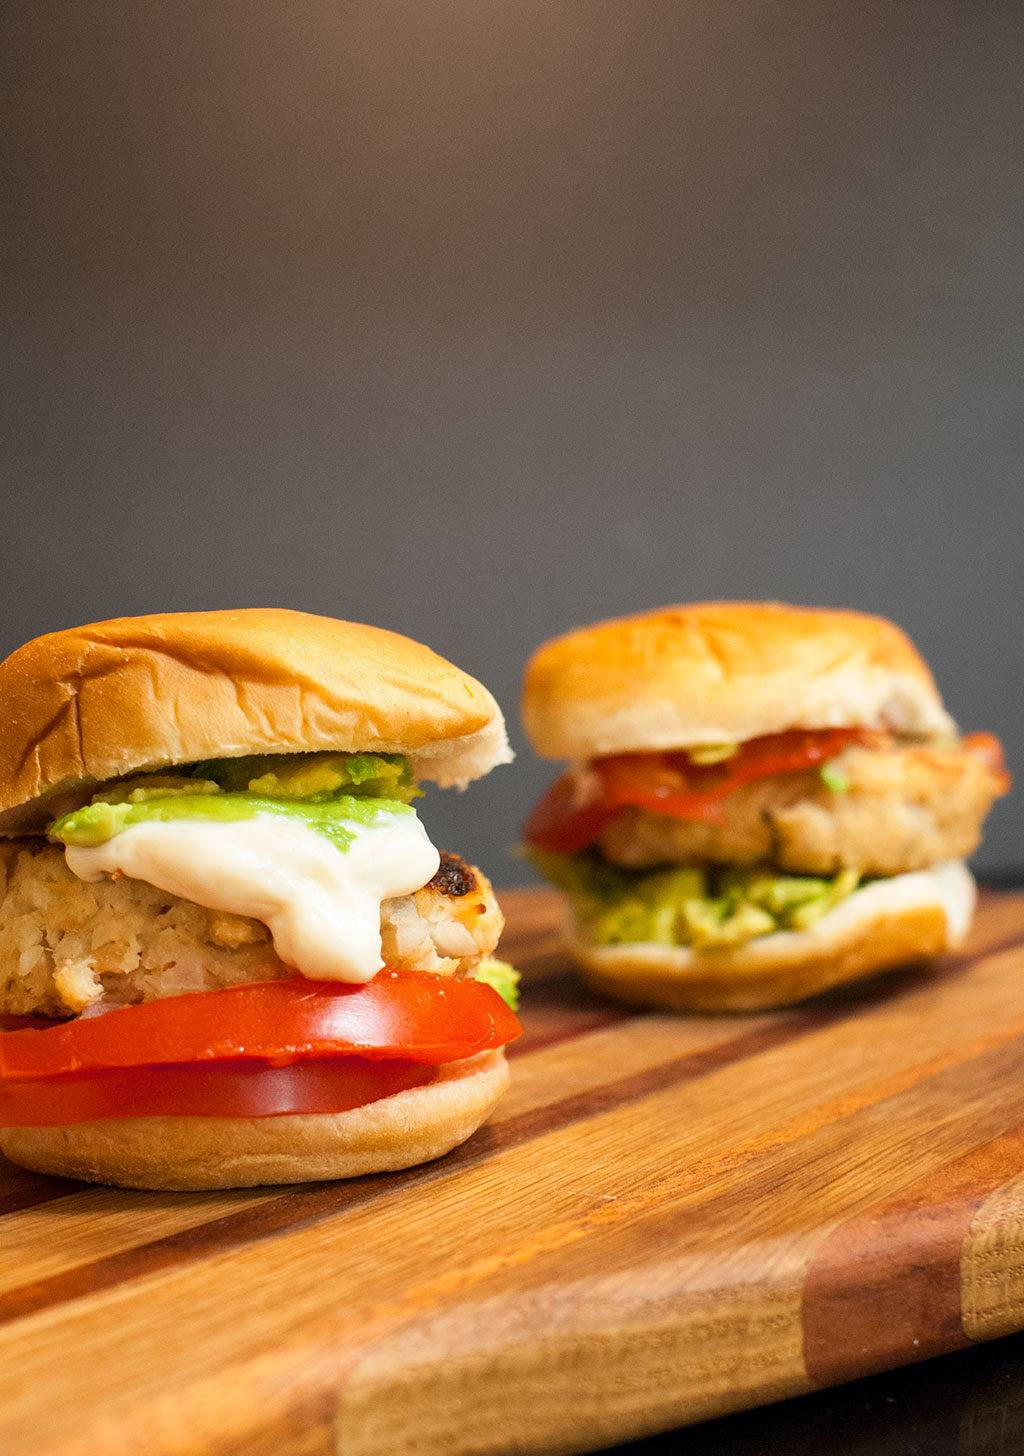 Tuna Burgers with Sesame Mayo and Avocado - A quick and delicious weeknight dinner for the whole family that's ready in under 20 minutes, but tastes like it took hours.